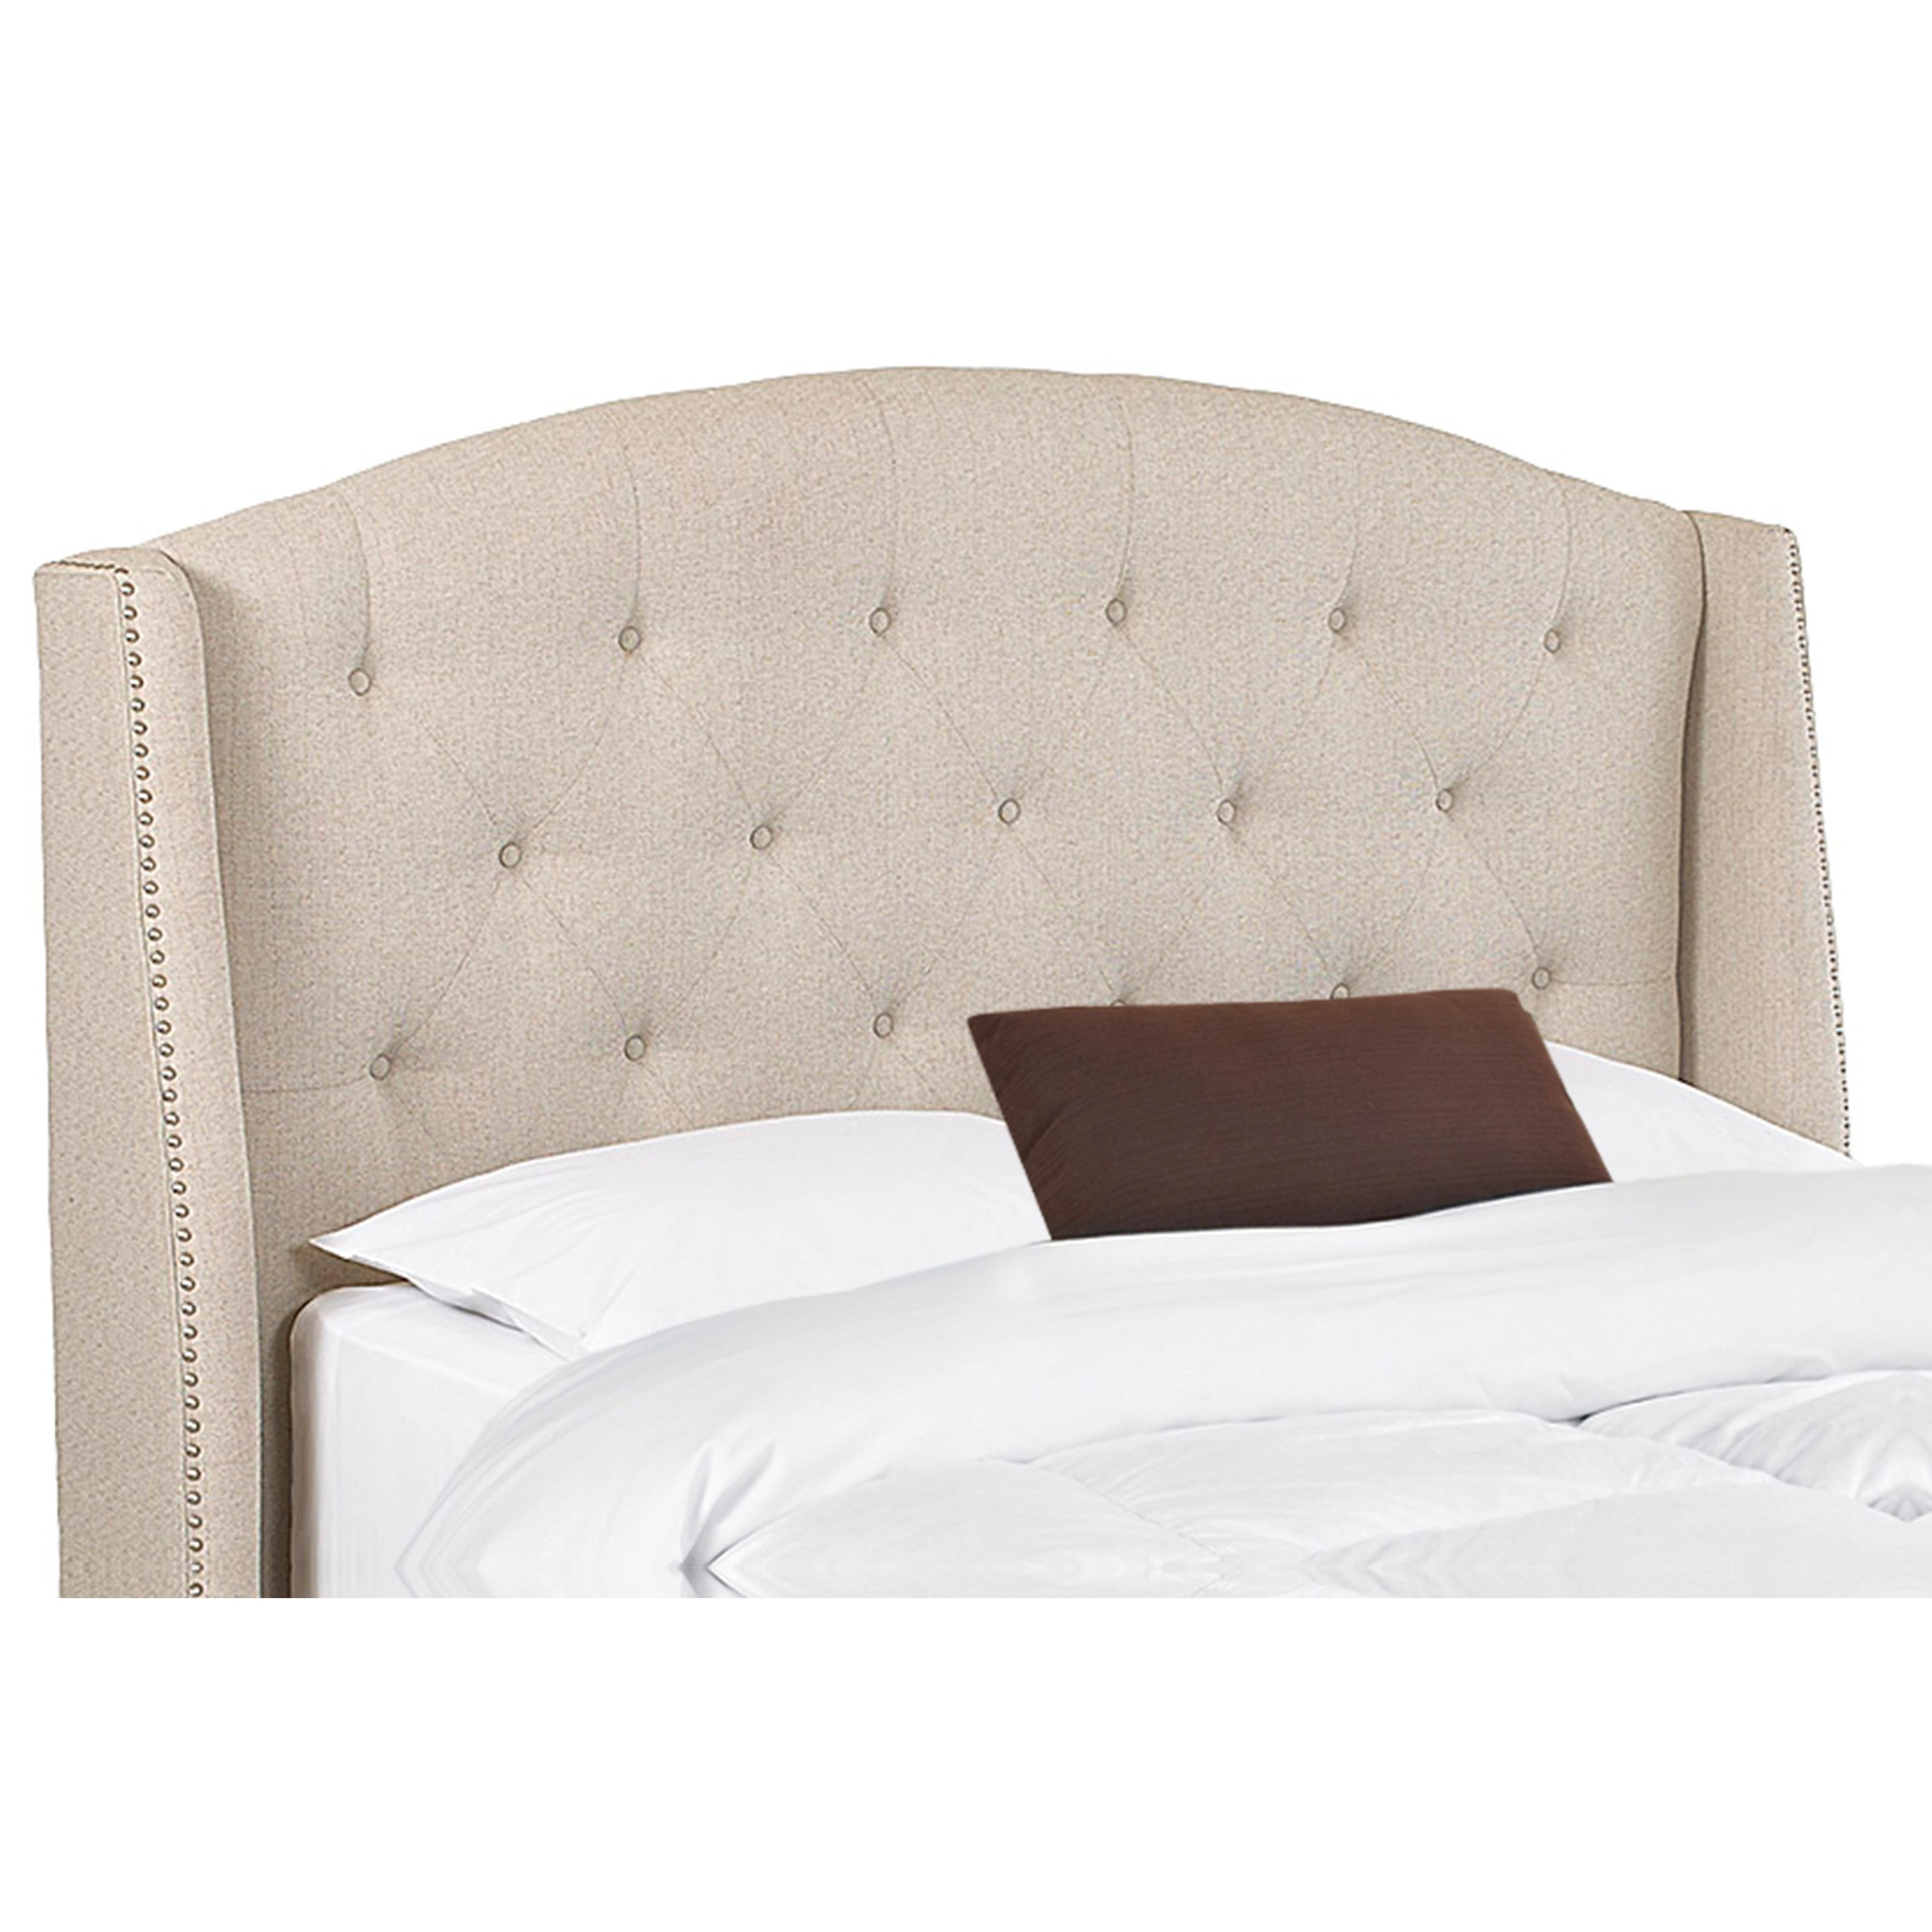 value city headboards klaussner upholstered beds and headboards harvard king 13709